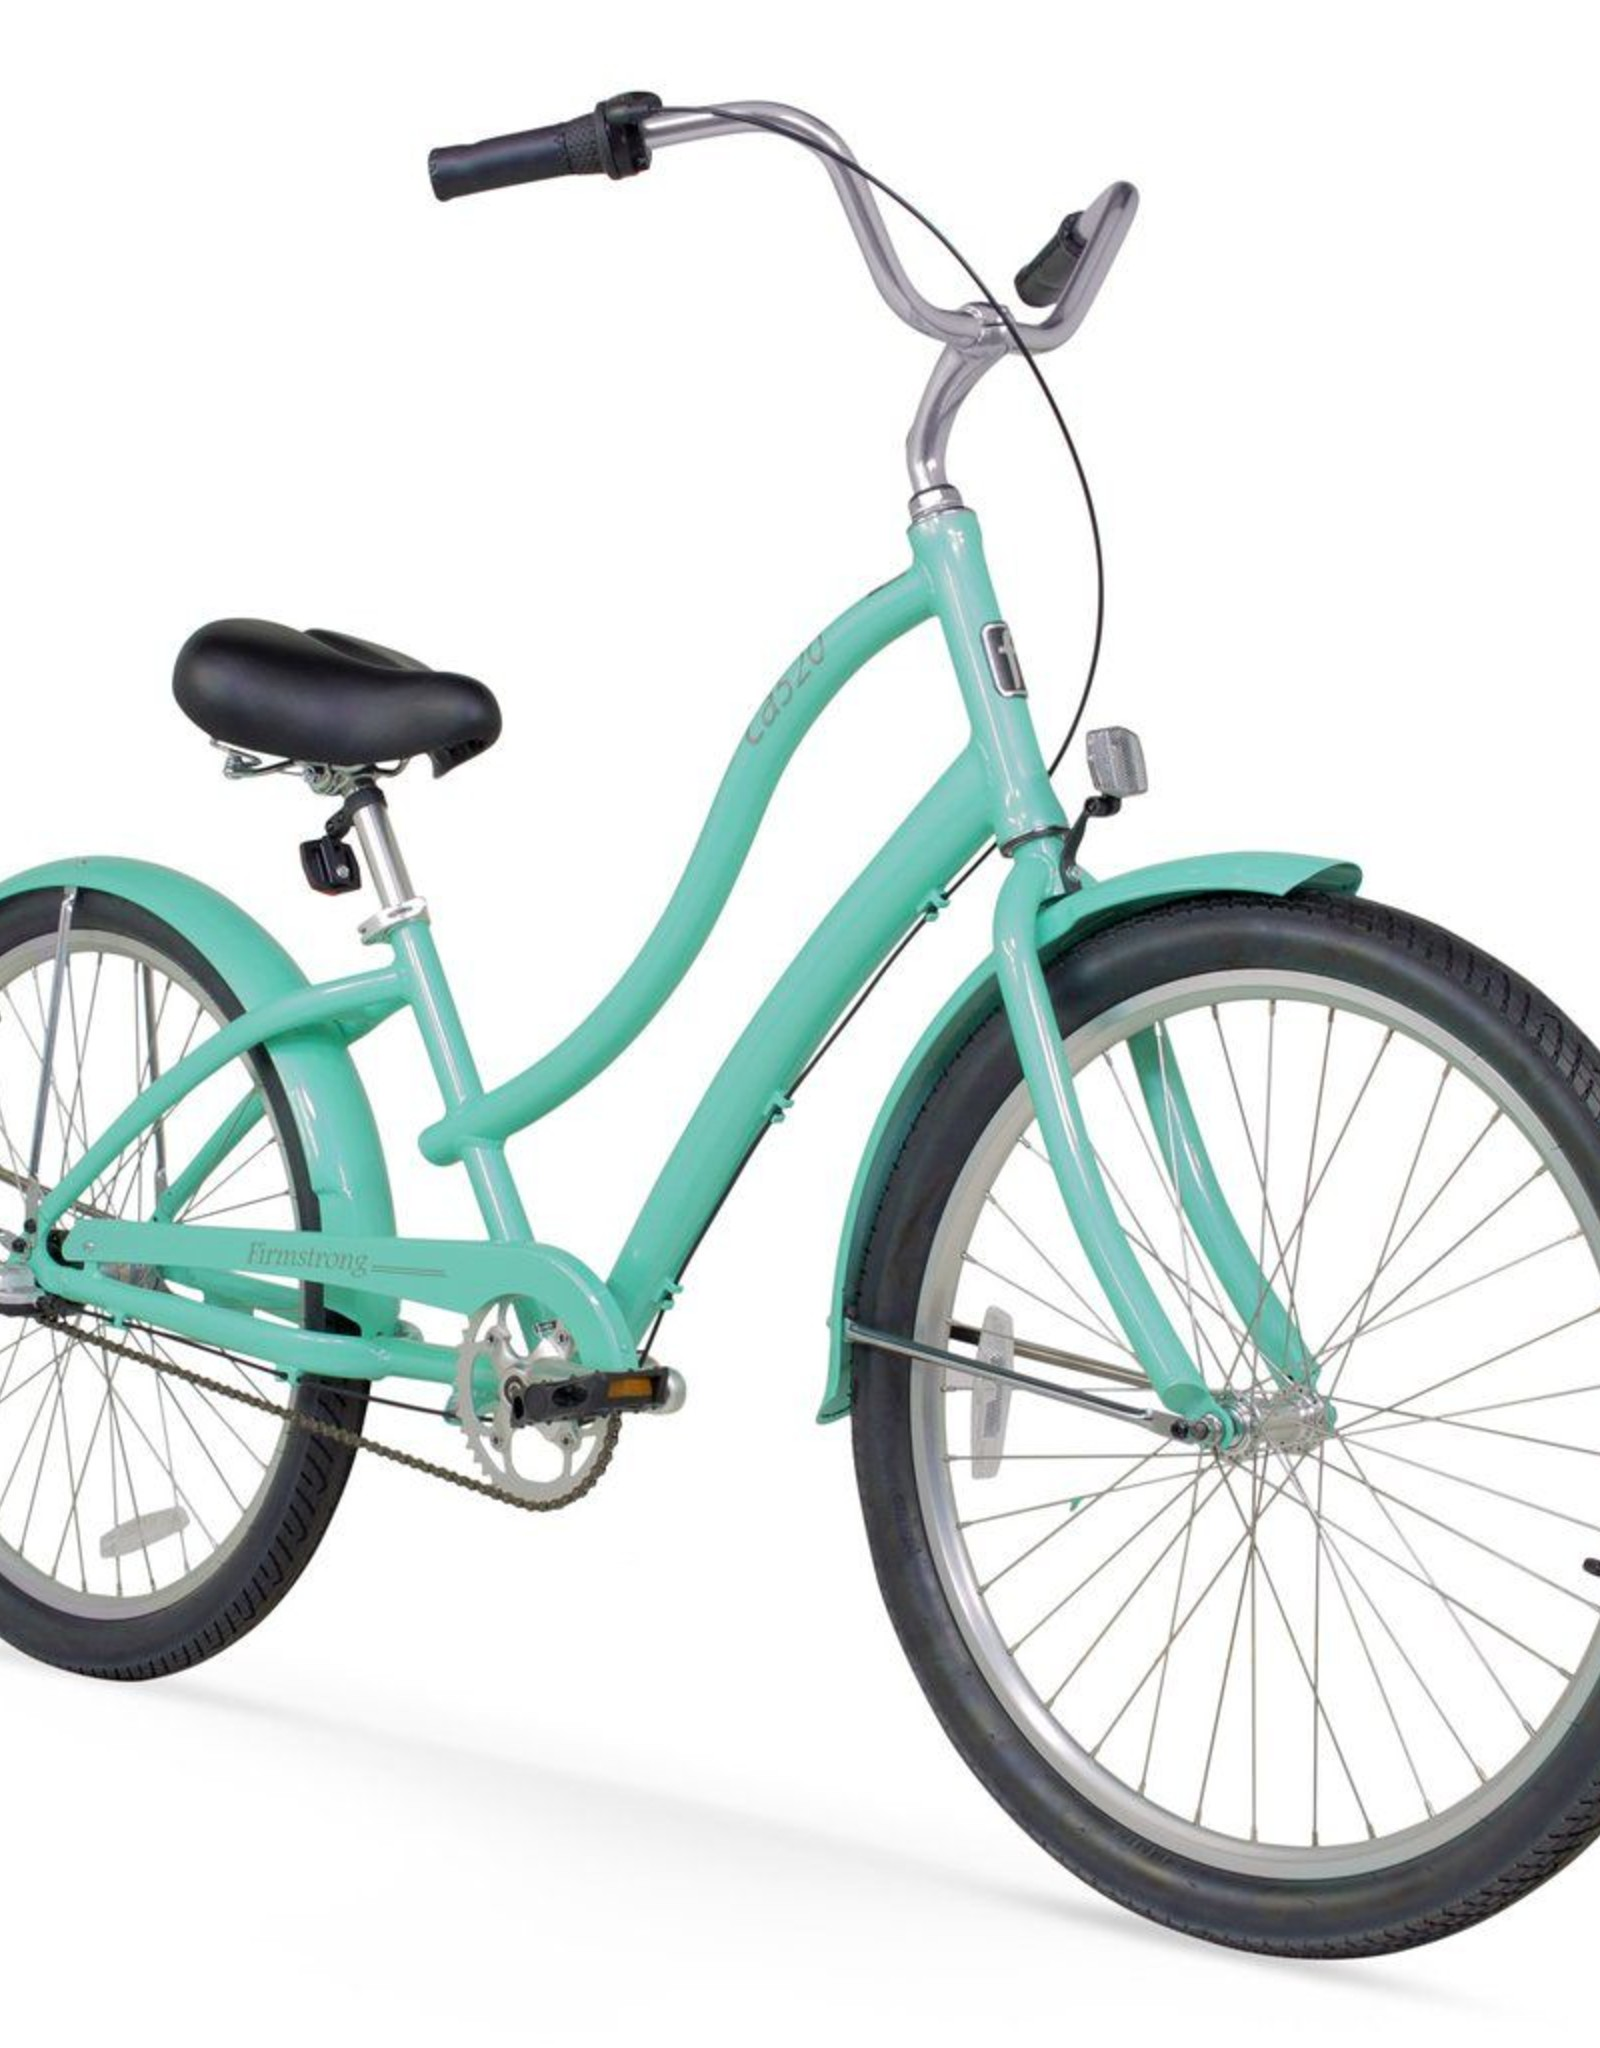 Firmstrong Firmstrong CA520 ALLOY 3-Speed, Ladies'